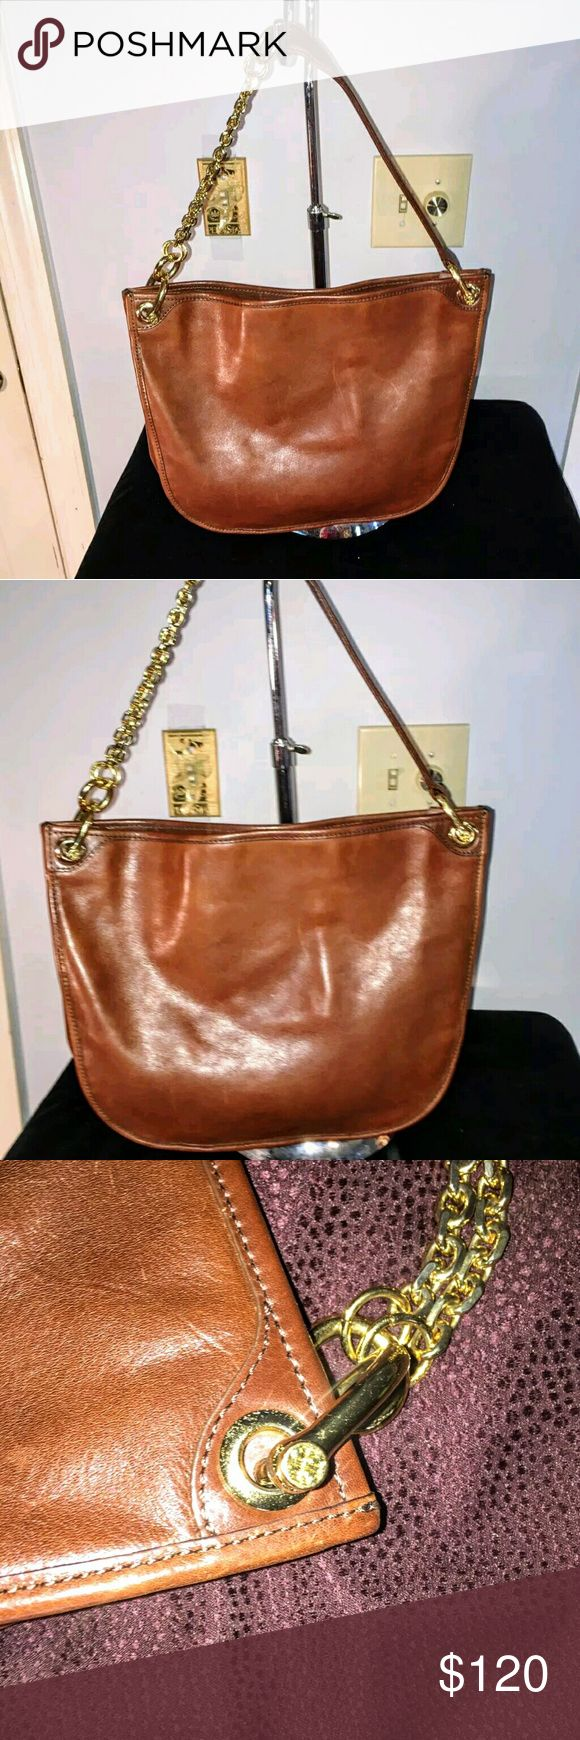 """$348 Tory Burch Cognac Leather Chain Shoulder Bag Pre-owned bag in very good condition. Light, normal  signs of wear on exterior but very minimal and corners/edges are in good shape! Thick gold chain strap adds a littke pizazz and us very sturdy. The interior is suede with a zip & open pocket. Notice slight discoloration by interior pocket...no idea.....as my sister stated ZERO stains etc. Not seen from outside, not major & may rub out. 10.5""""H x 13""""L x 3"""". **PRICED LOW FOR QUICK SALE** Tory…"""